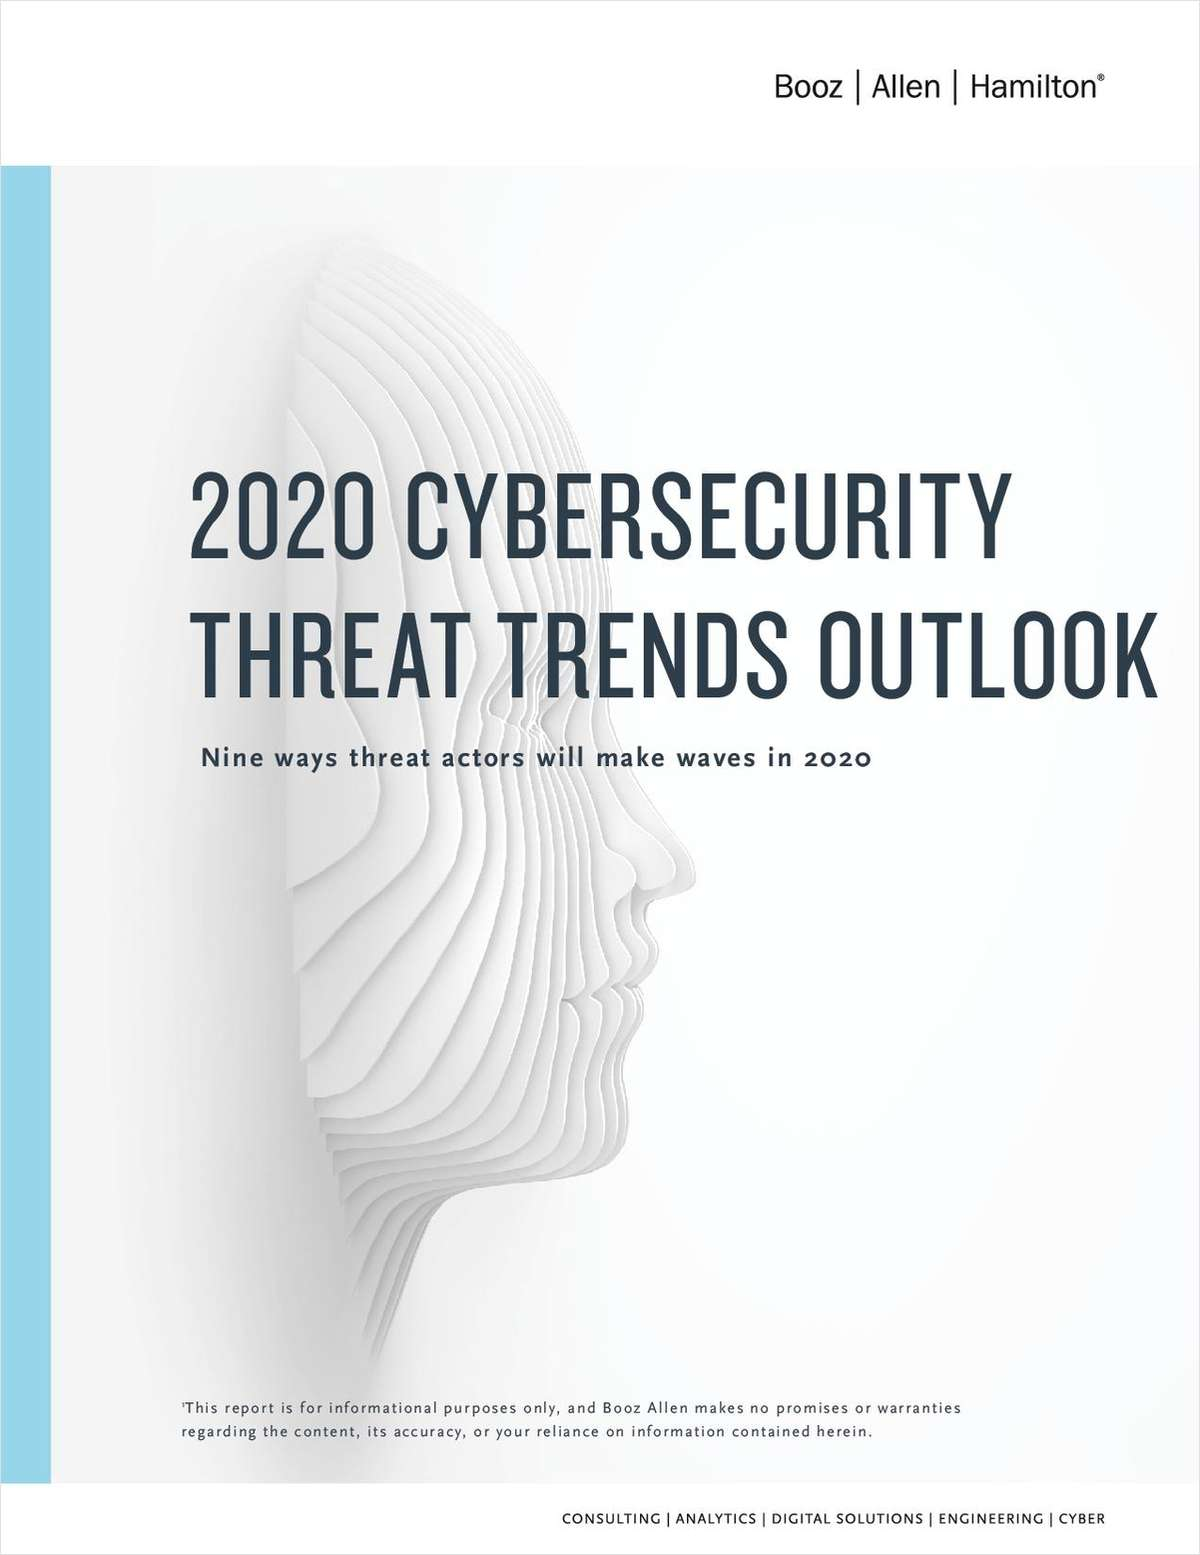 2020 Cybersecurity Threat Trends: Predicting and Preparing for Tomorrow's Threats